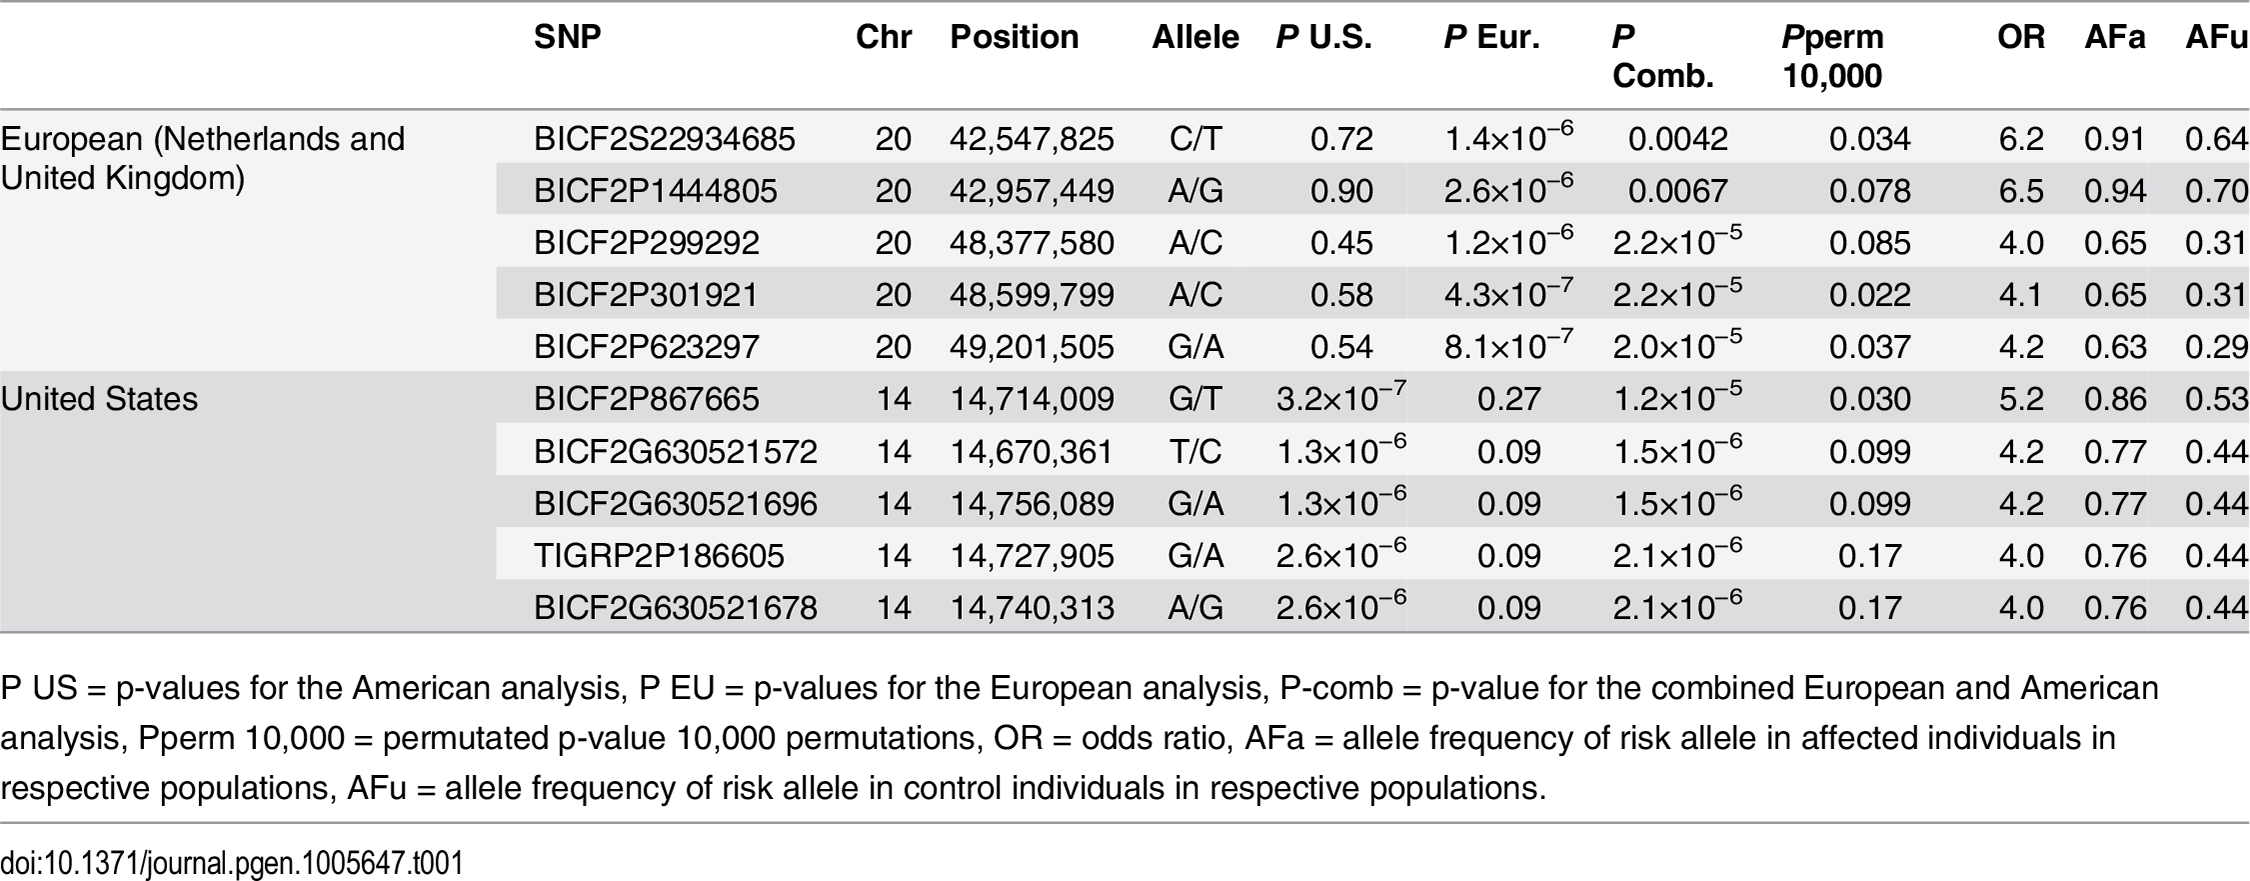 Top-ranking GWAS SNPs from European and United States data.